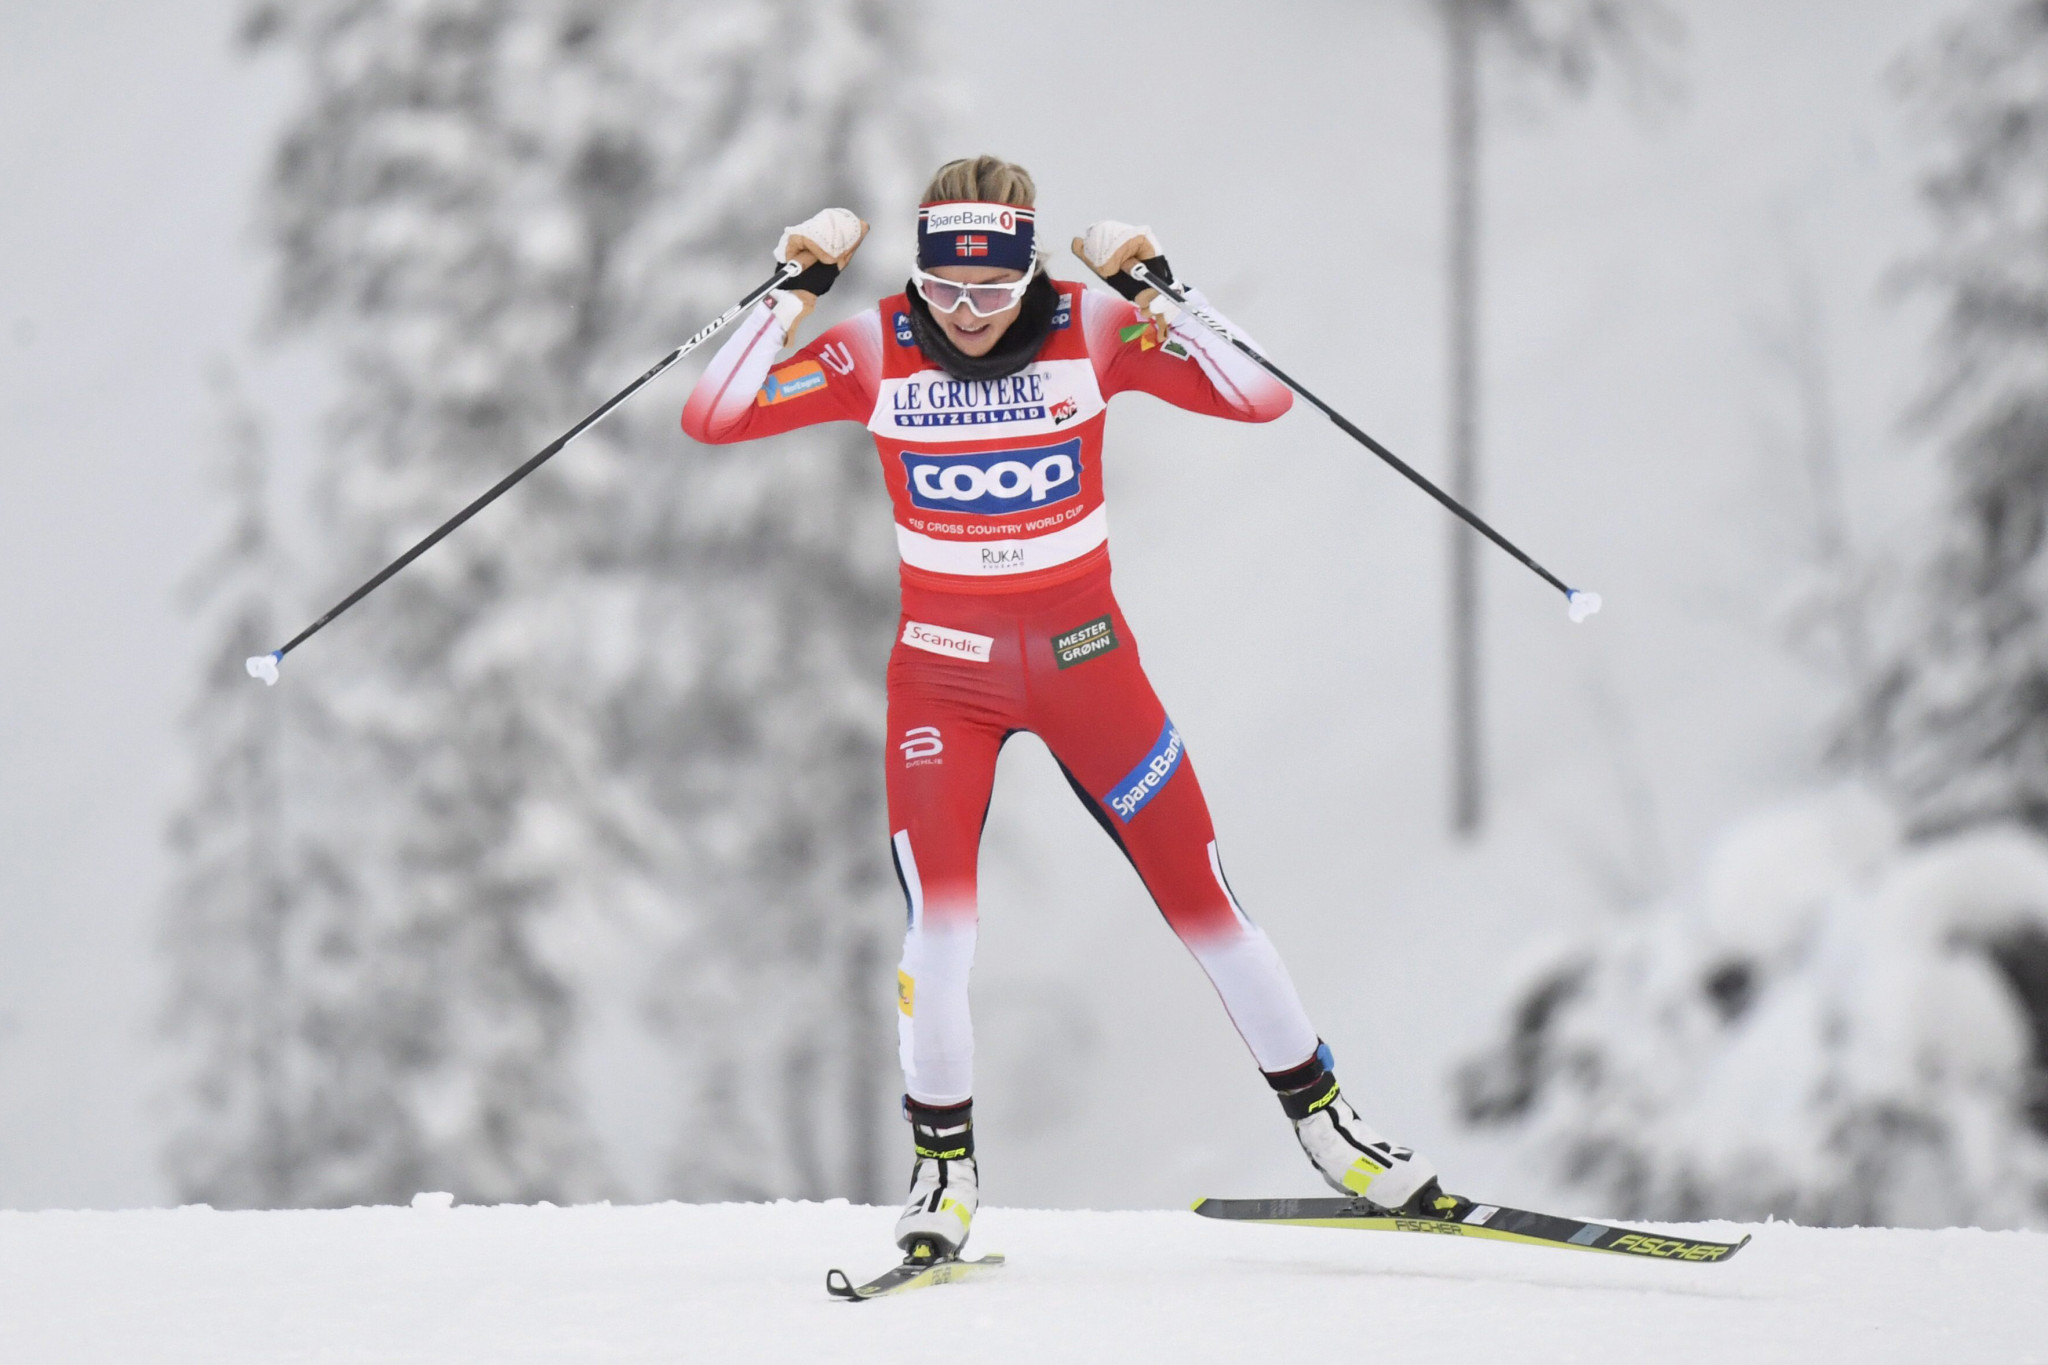 Johaug and Klæbo on track for home victories at FIS Cross-Country World Cup in Lillehammer